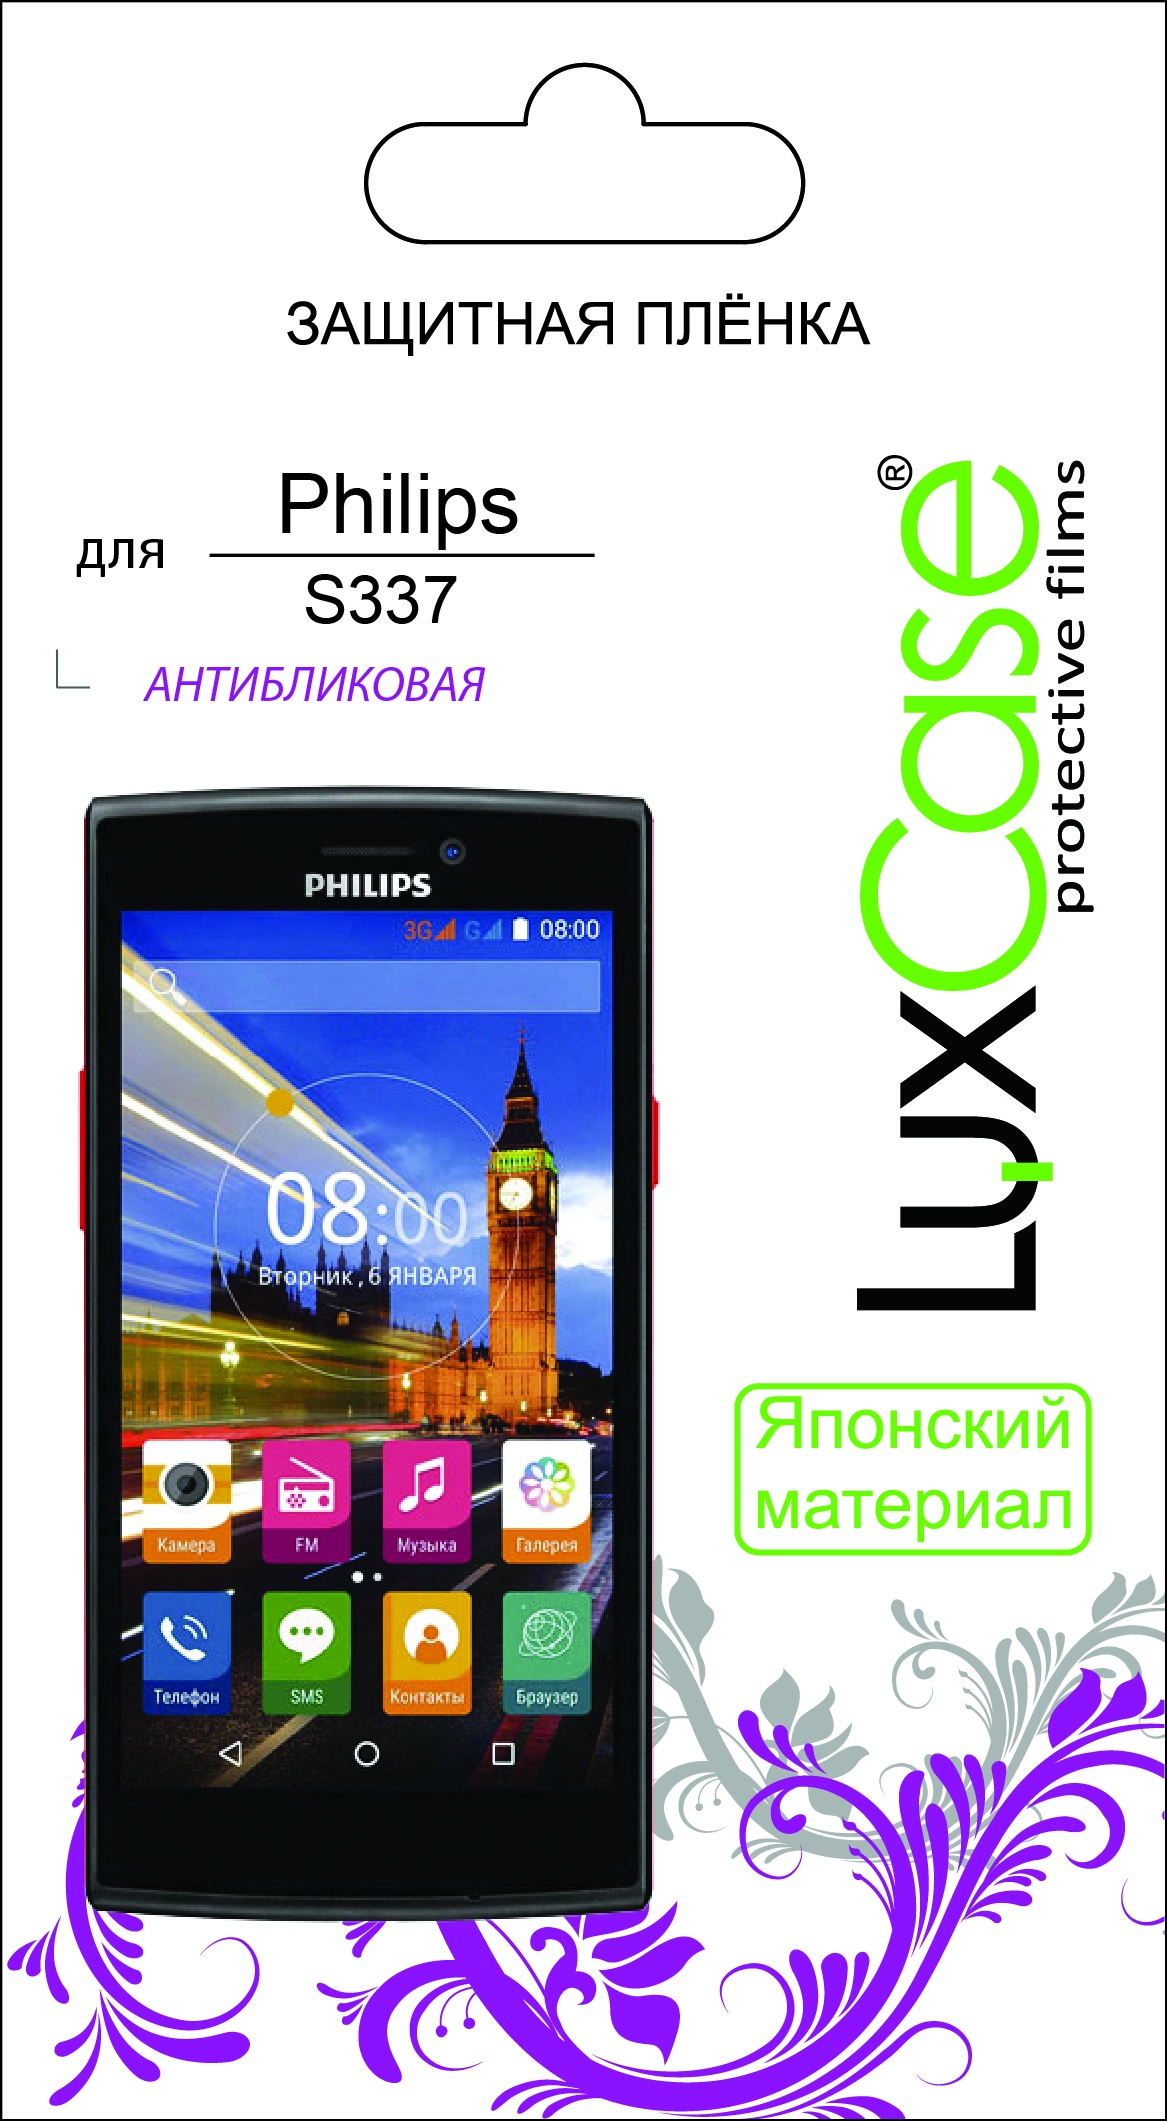 Пленка Philips S337 / антибликовая philips s337 black red